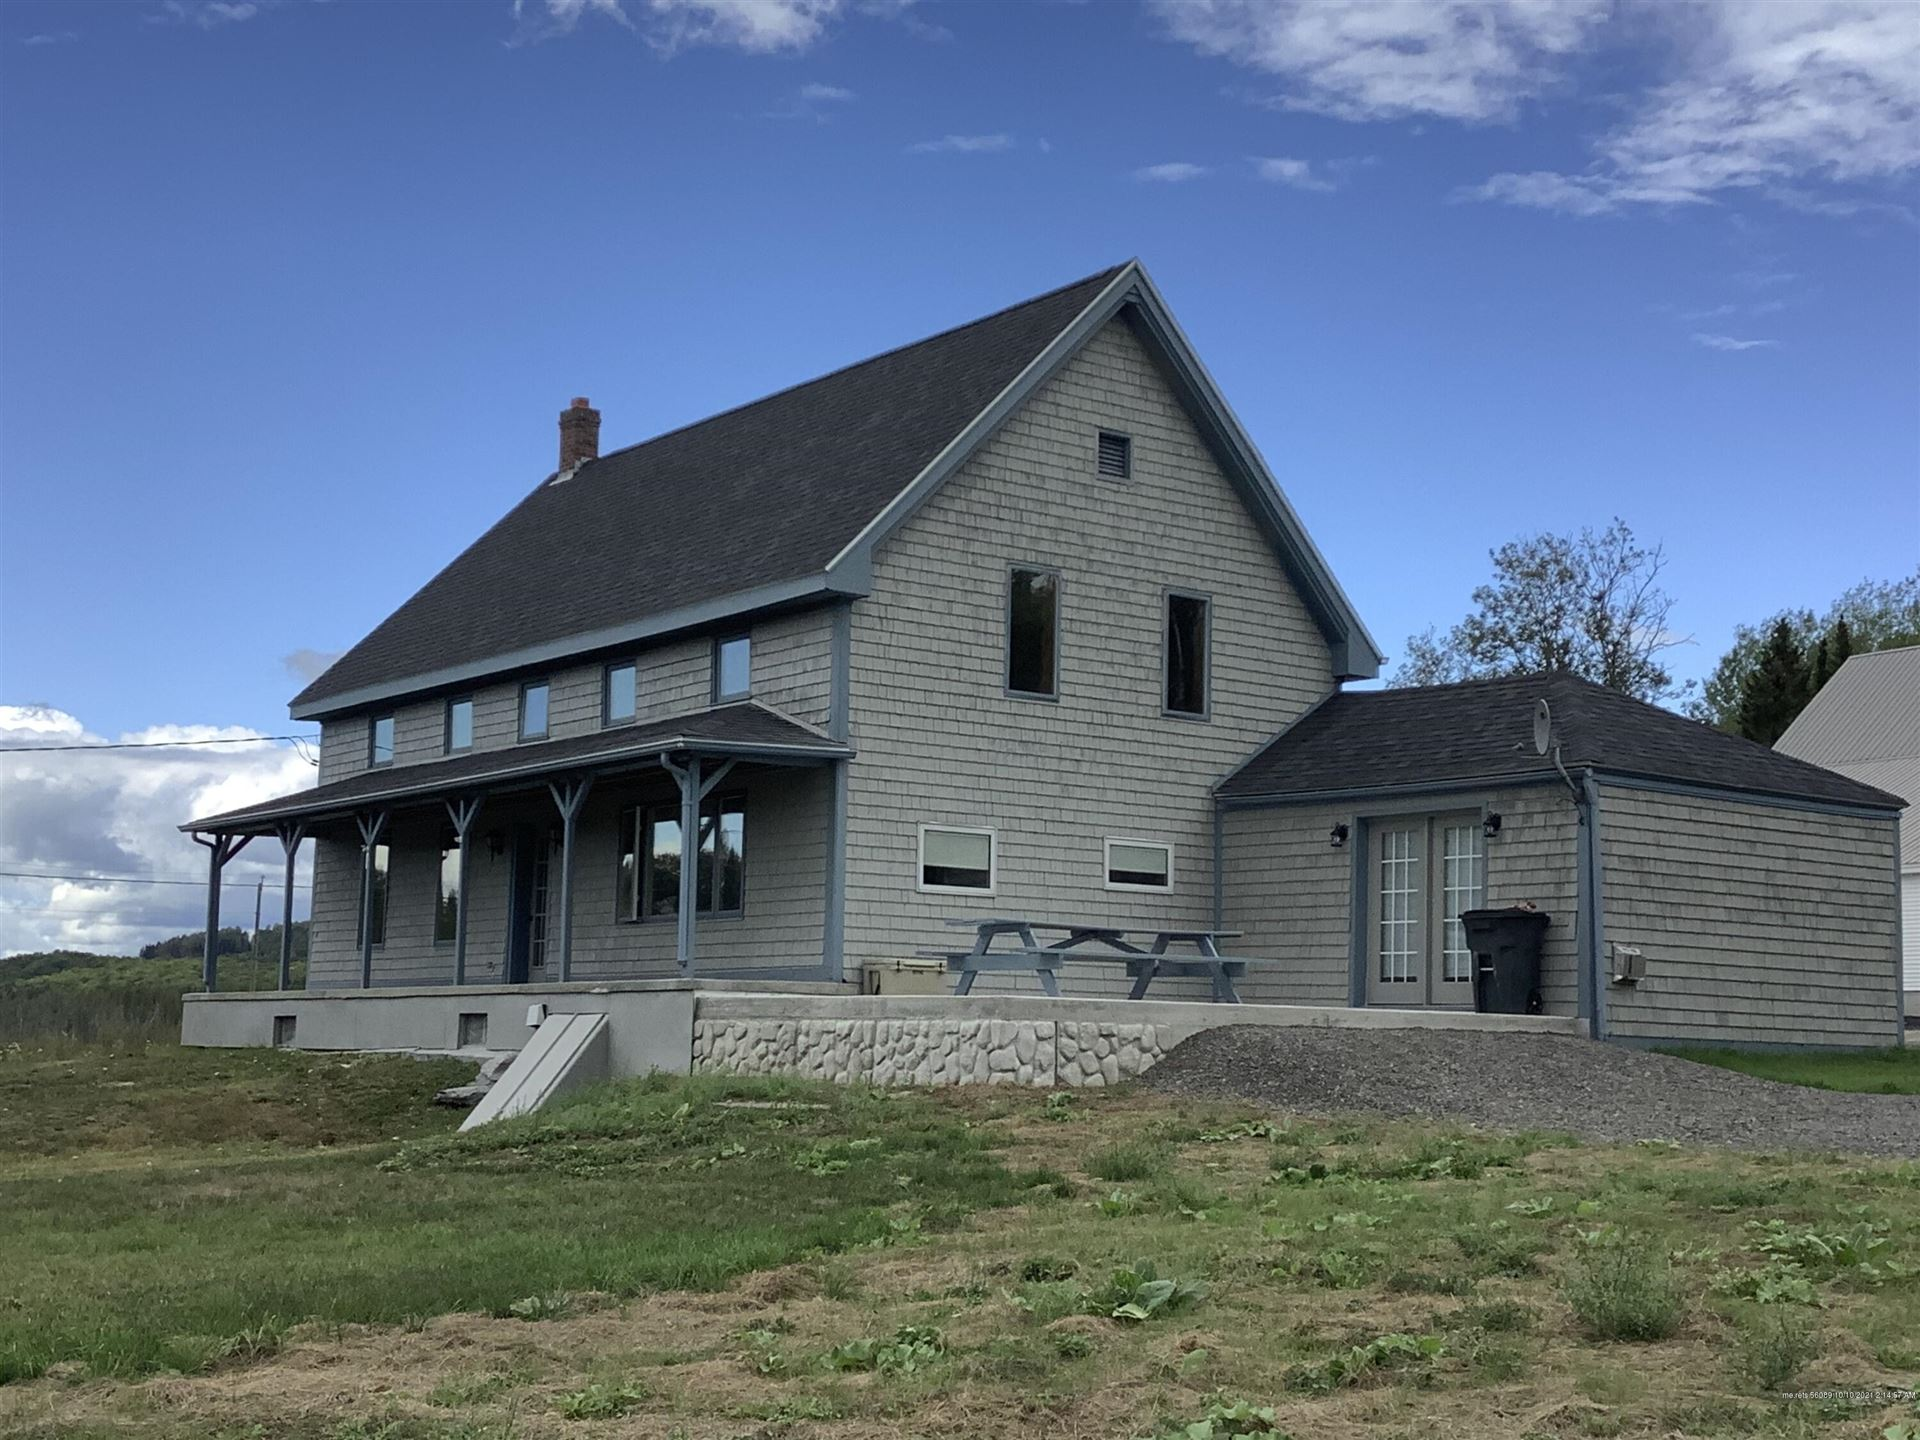 Photo of 10 Clavette Road, New Canada, ME 04743 (MLS # 1511480)